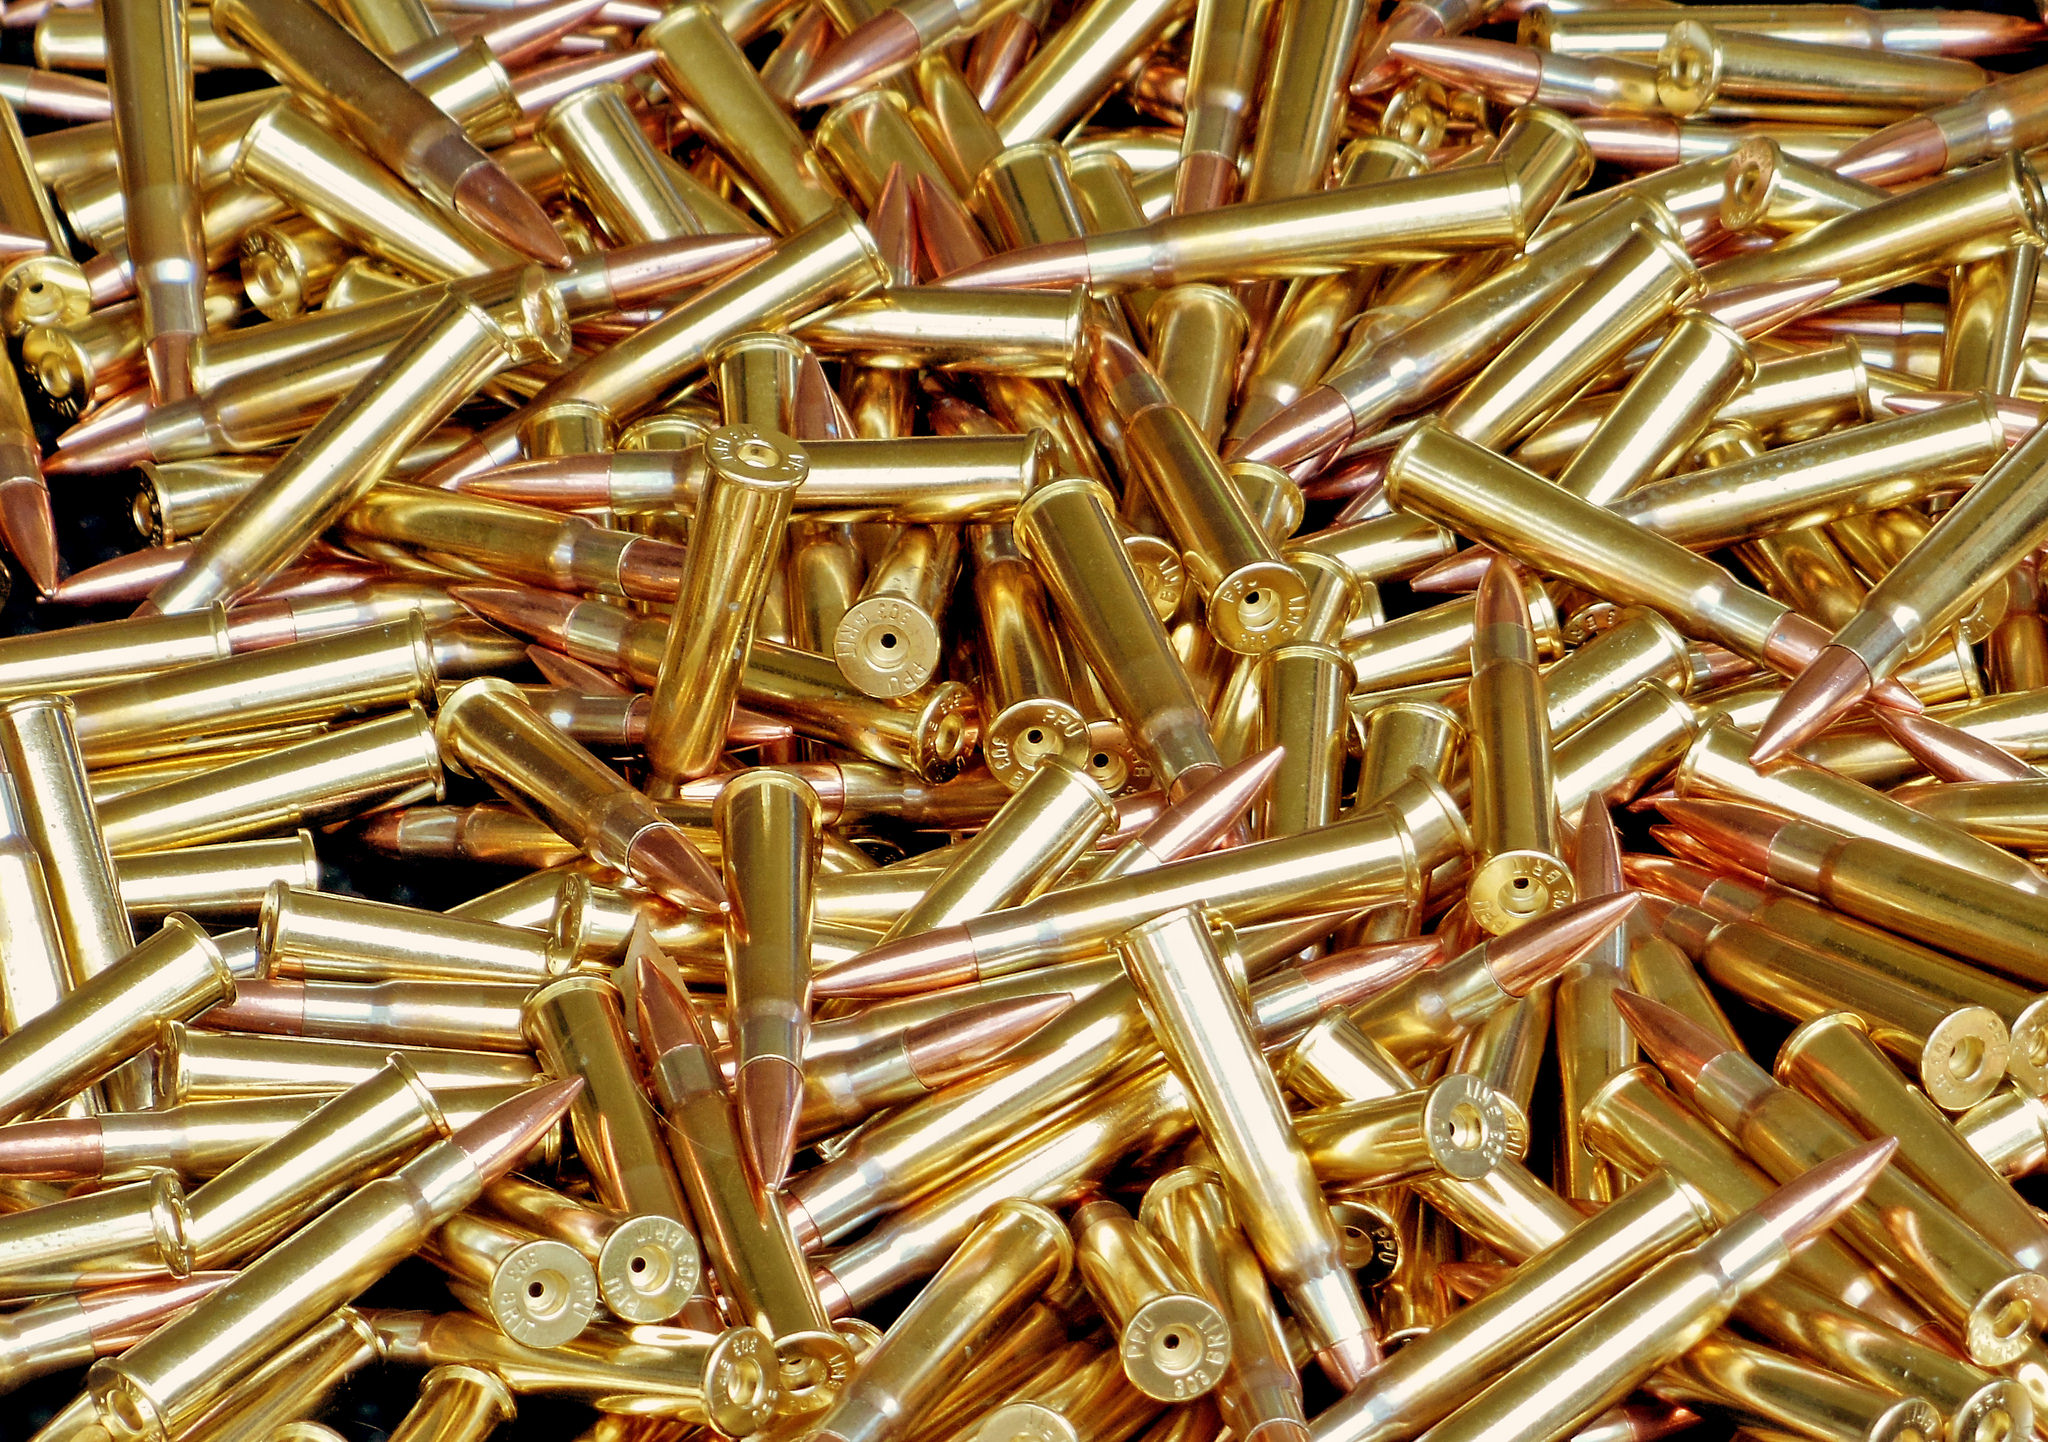 trafic-armes-weapon-trafficking-arms